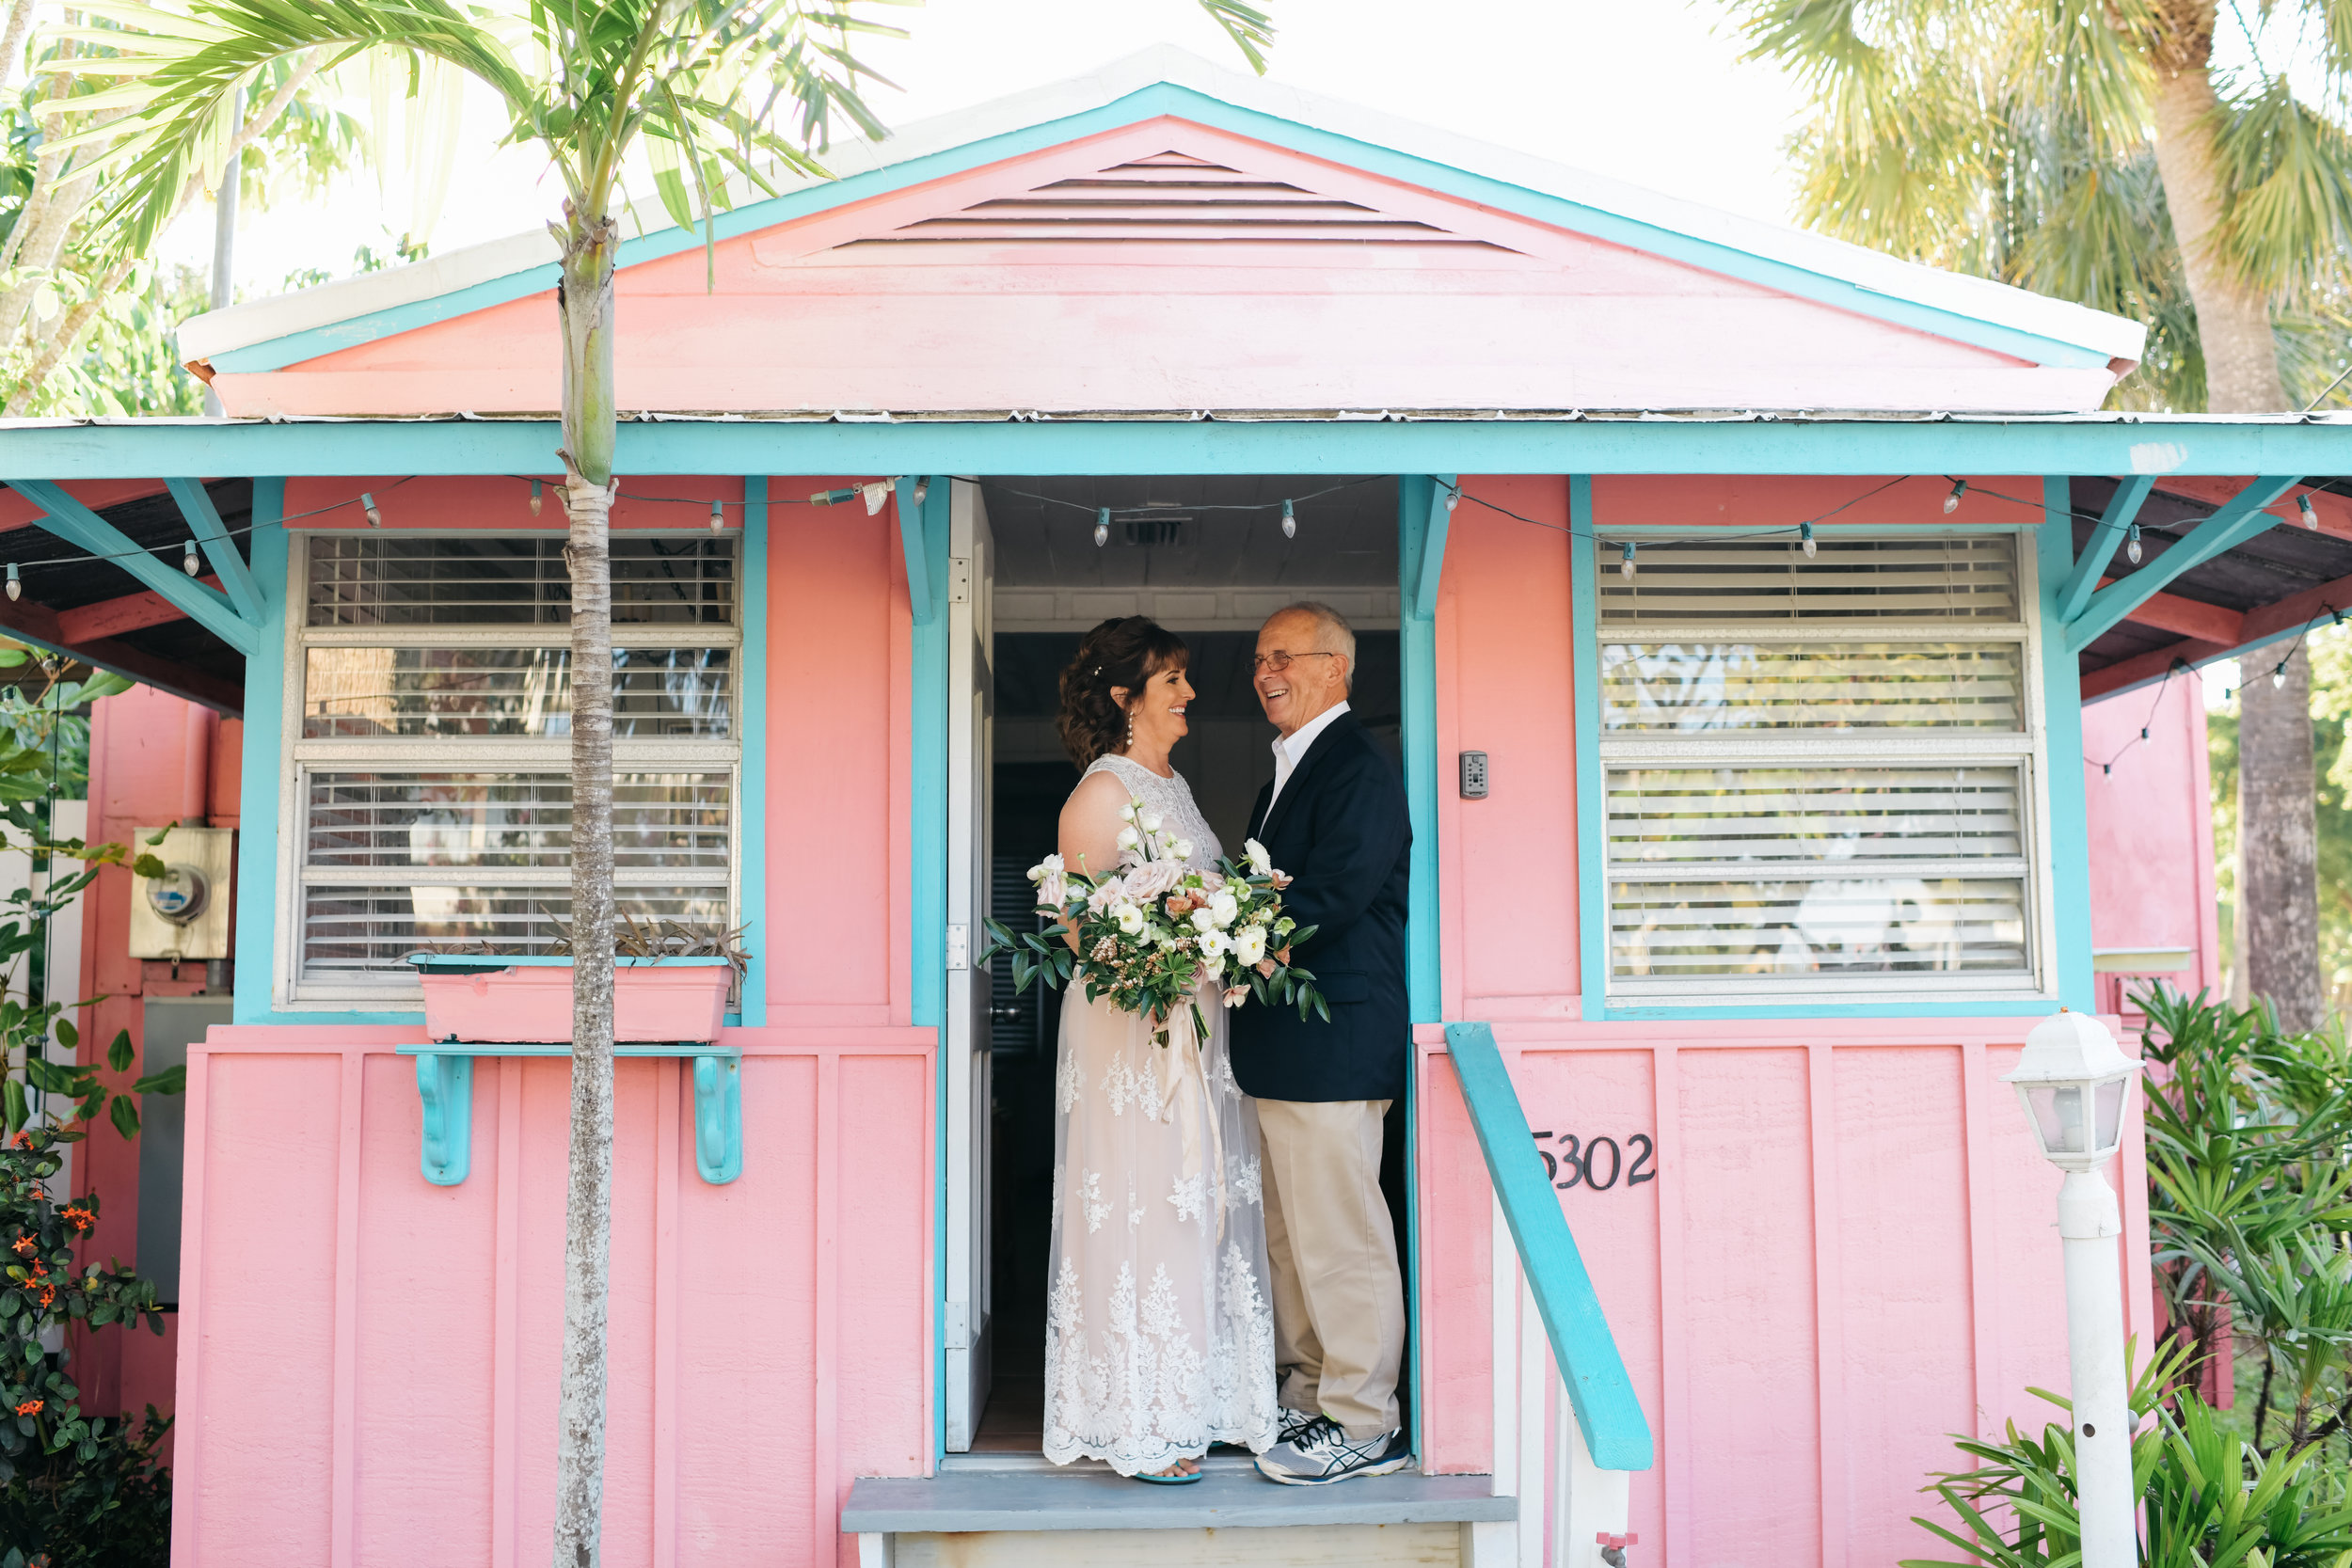 Julie_Bob_Siesta_Key_Wedding_April_2018-11.jpg